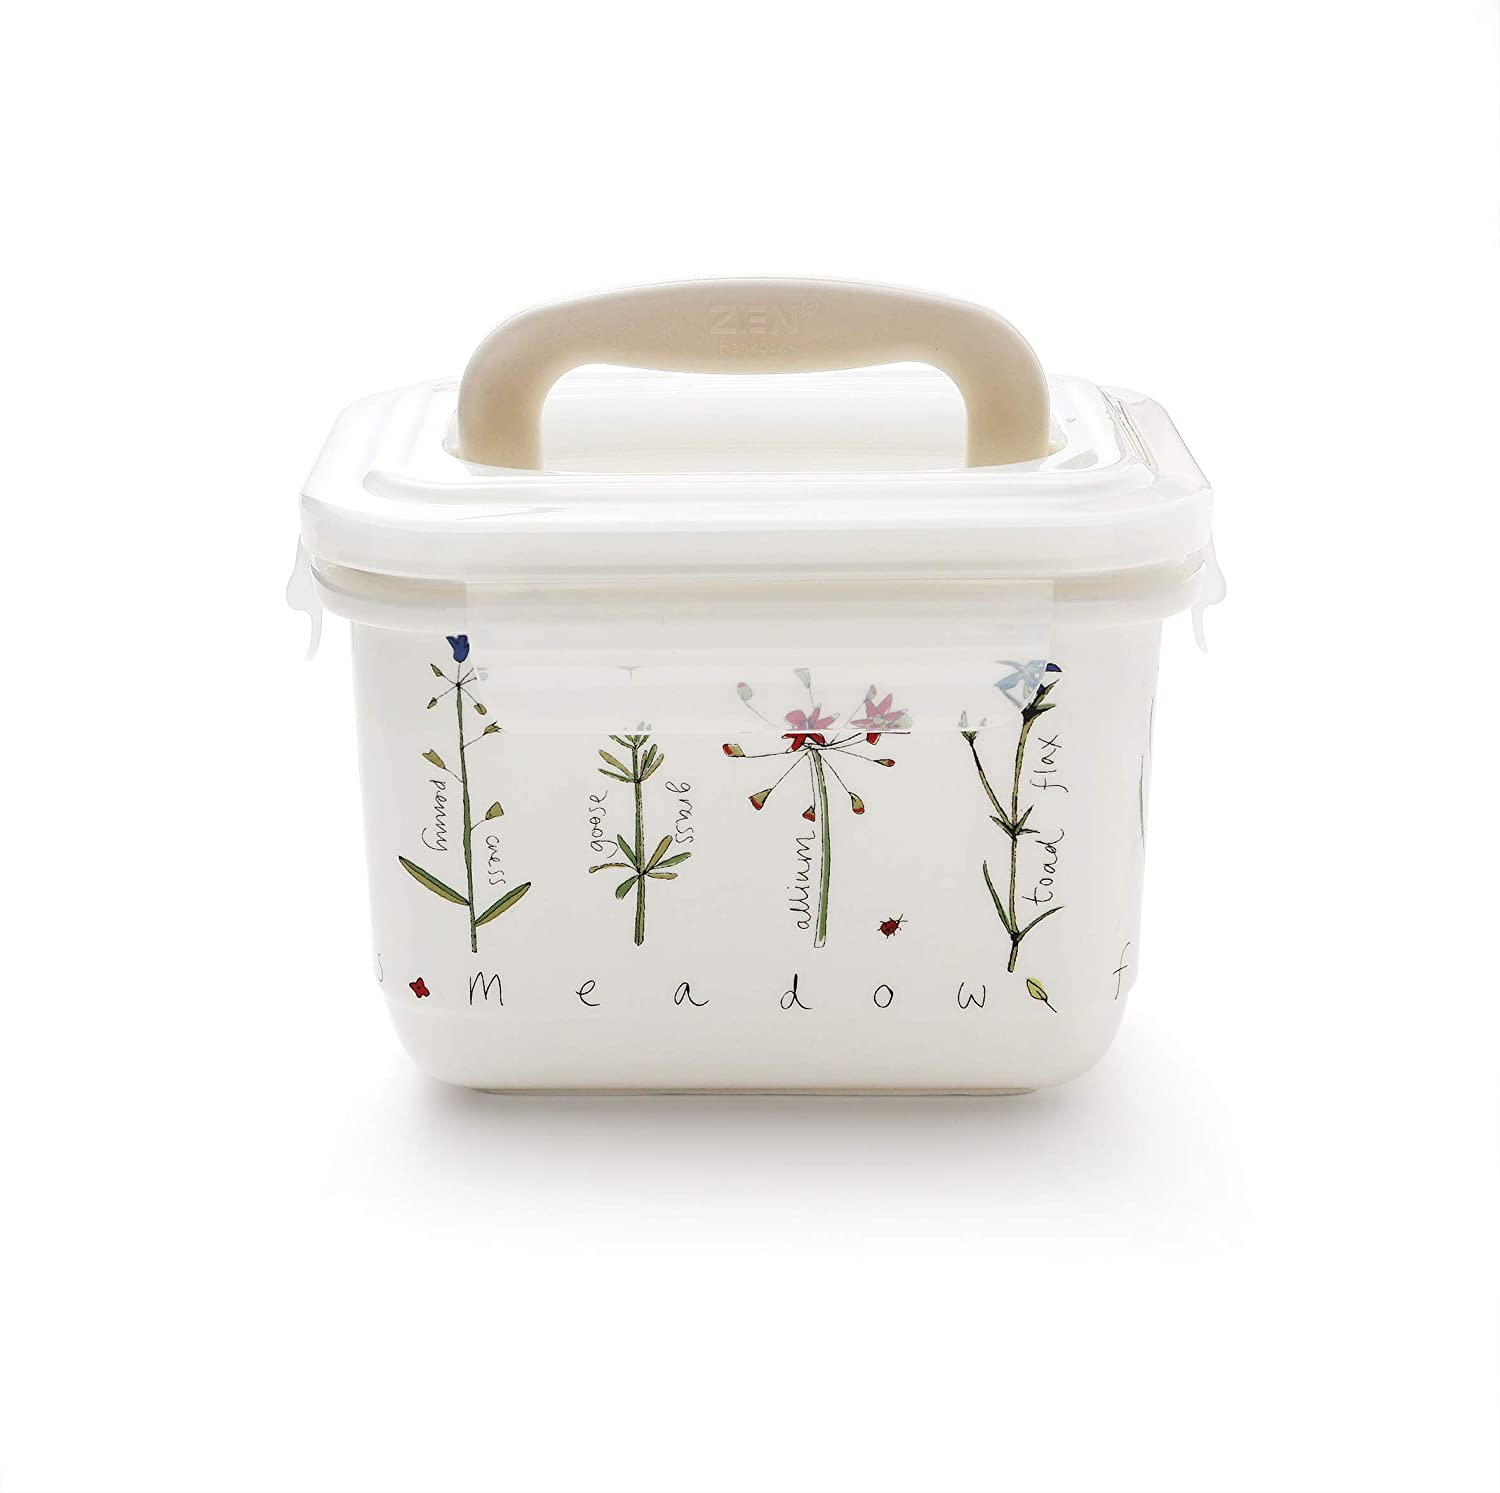 RACHEL BARKER Meadow Flower Porcelain Serve and Store Airtight Large Container (70OZ)